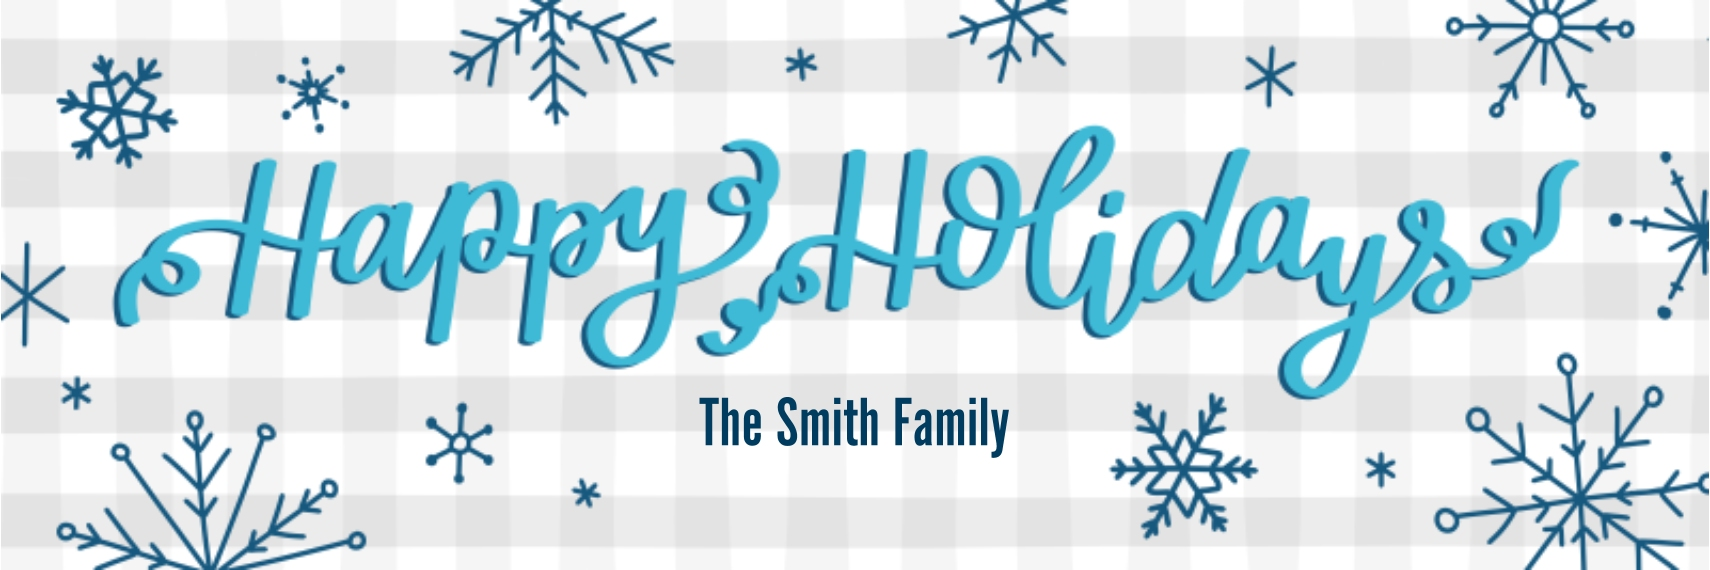 Holiday Photo Banner 2x6, Home Décor -Holiday Snowflakes